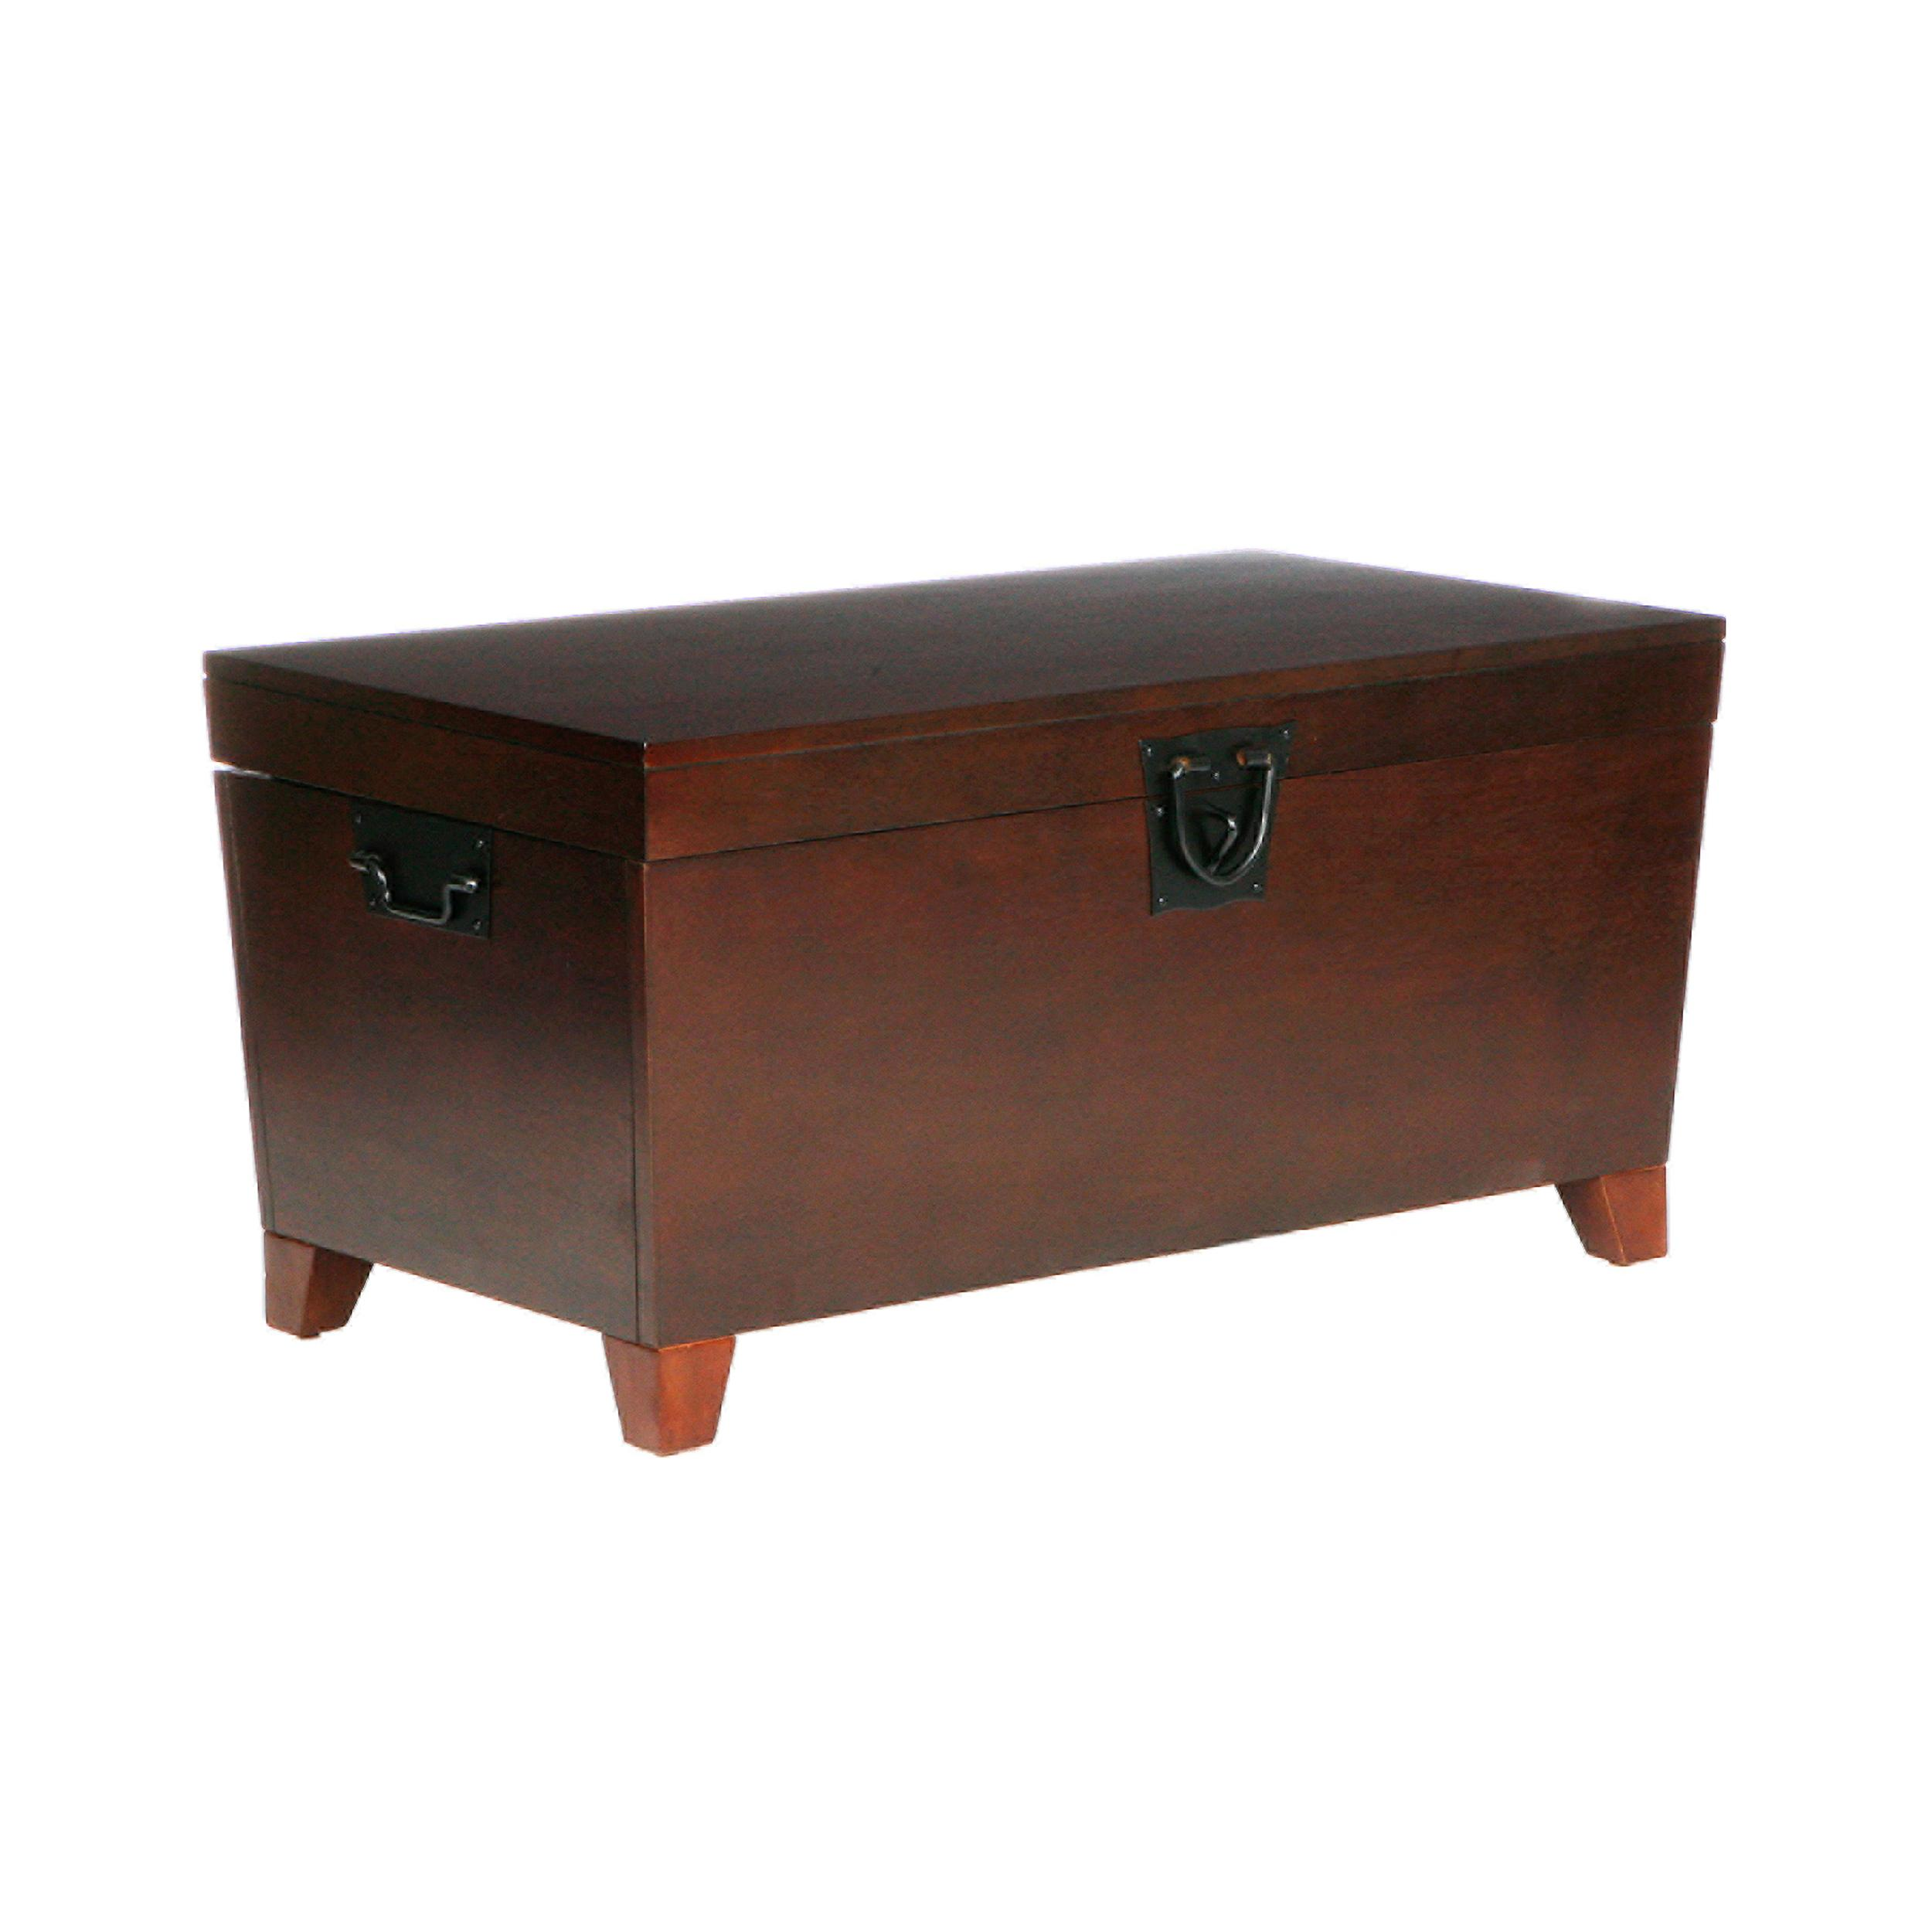 Southern enterprises pyramid storage trunk cocktail table espresso finish kitchen Trunk coffee tables